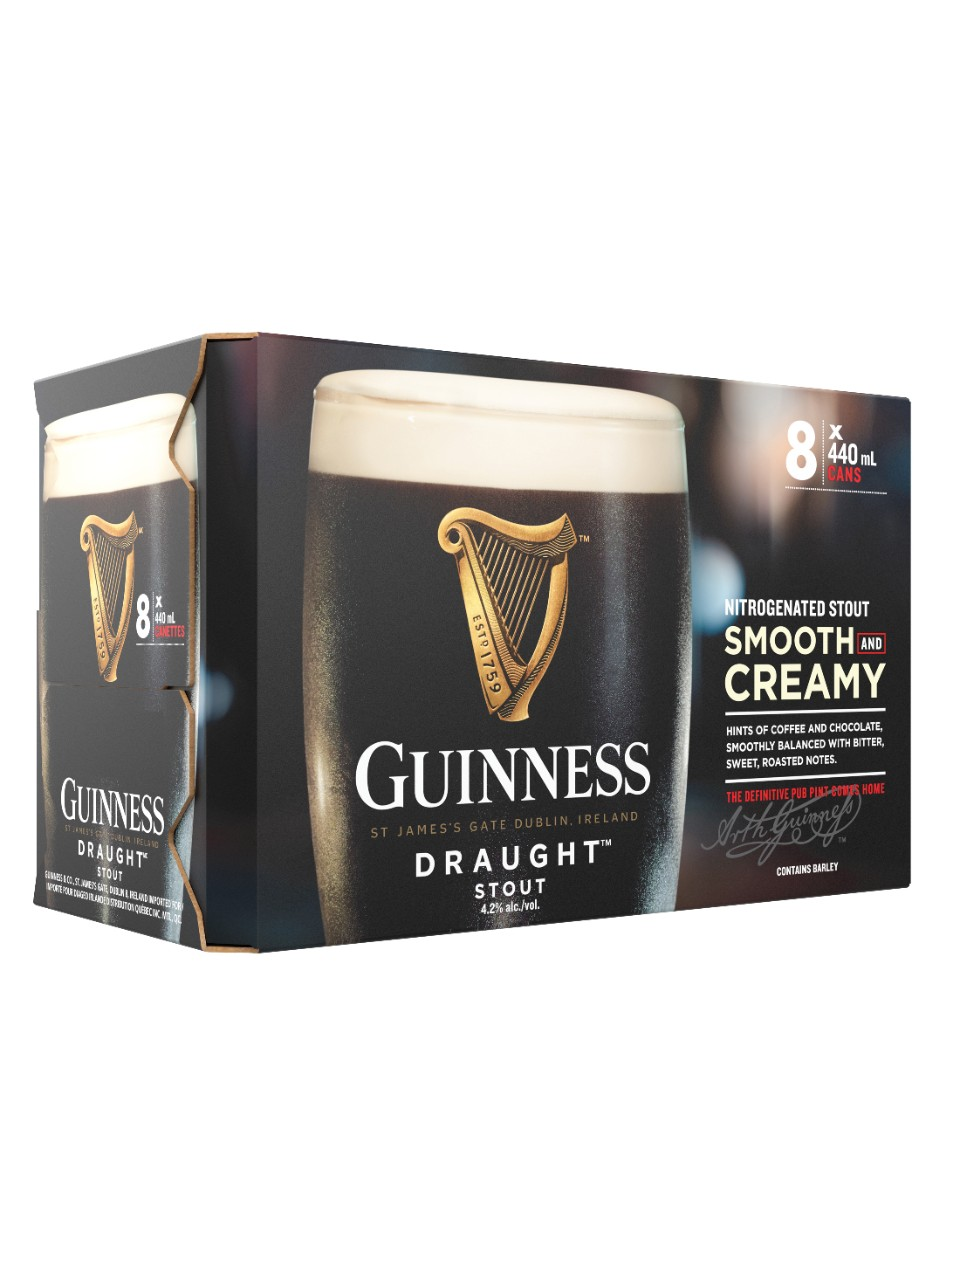 Guinness Draught from LCBO